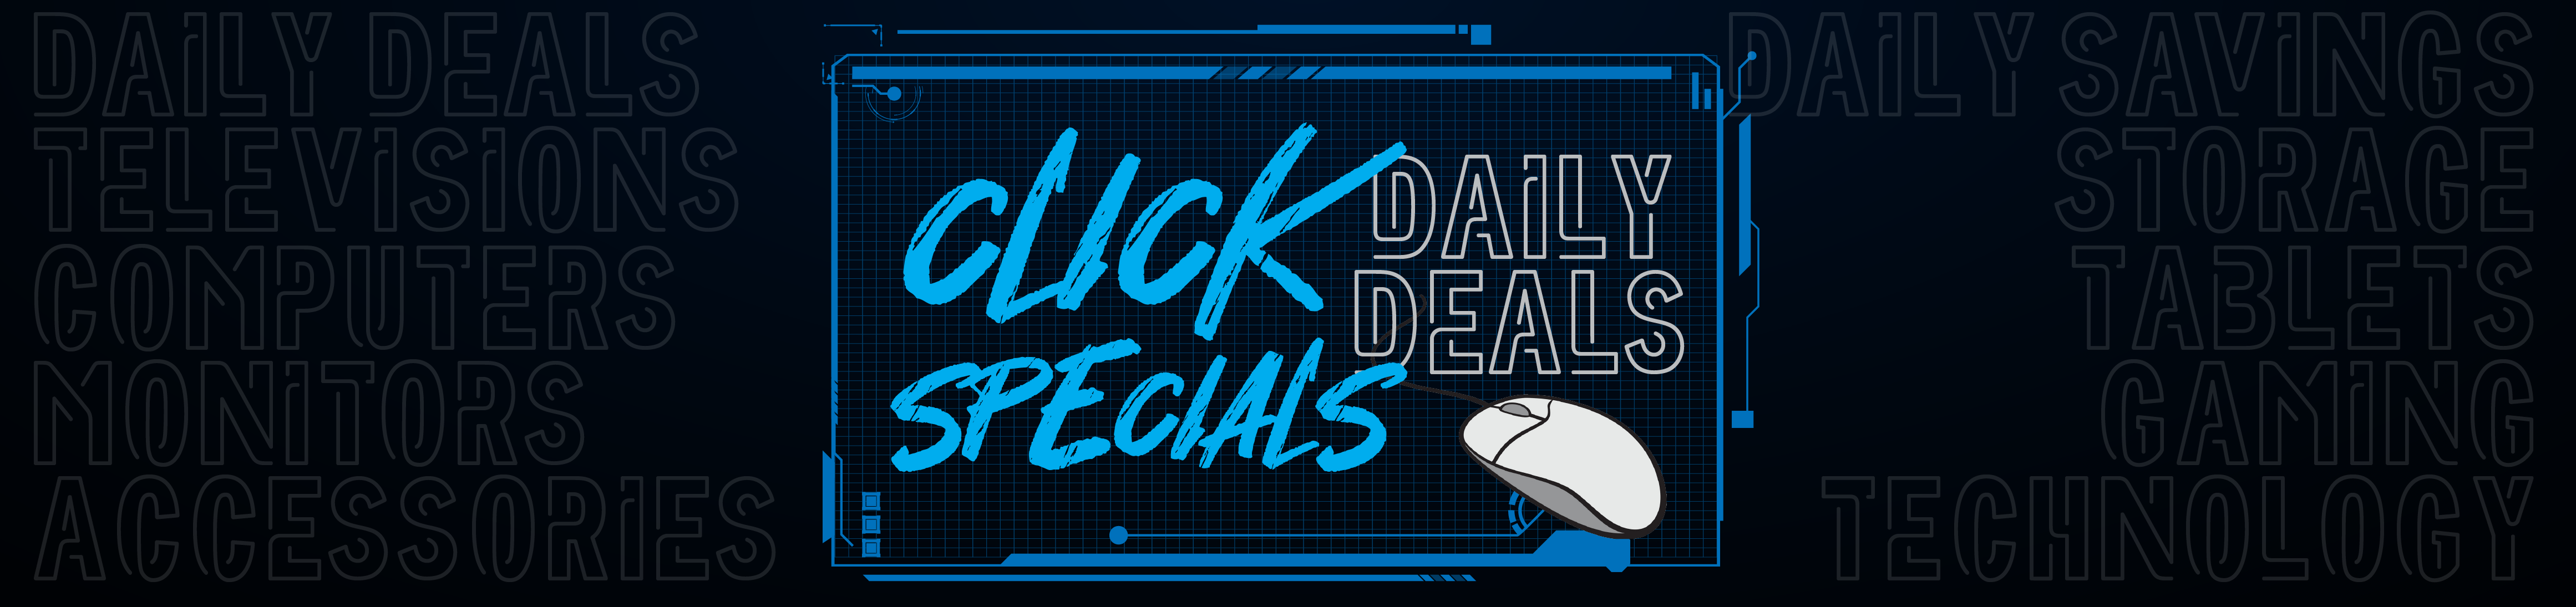 Click Specials - Daily Deals & Savings